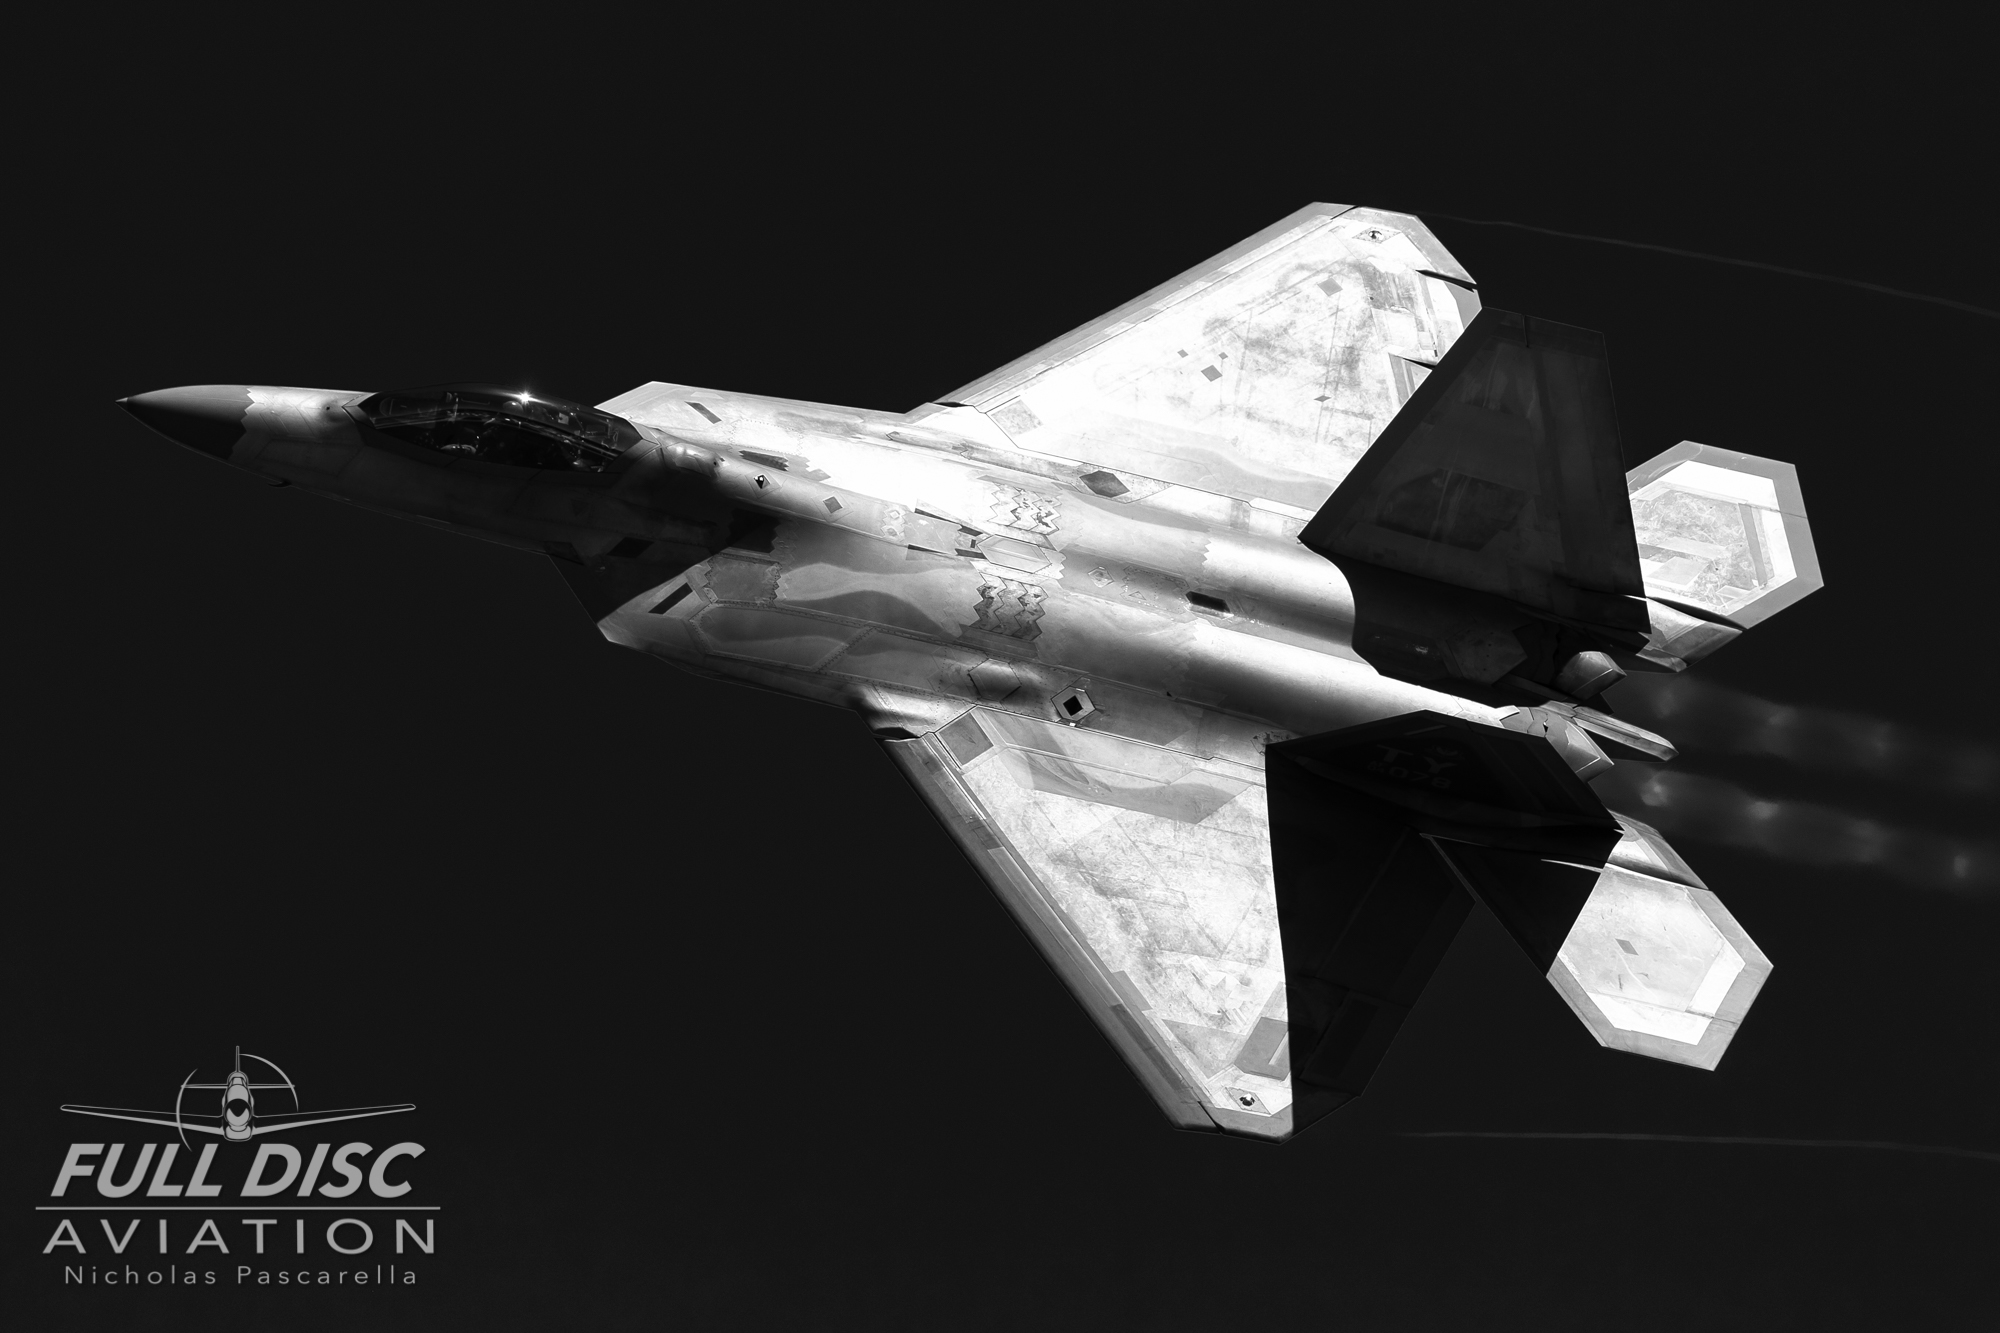 f22_raptordemoteam_redchannel_blackandwhite_nickpascarella_fulldiscaviation_r.jpg